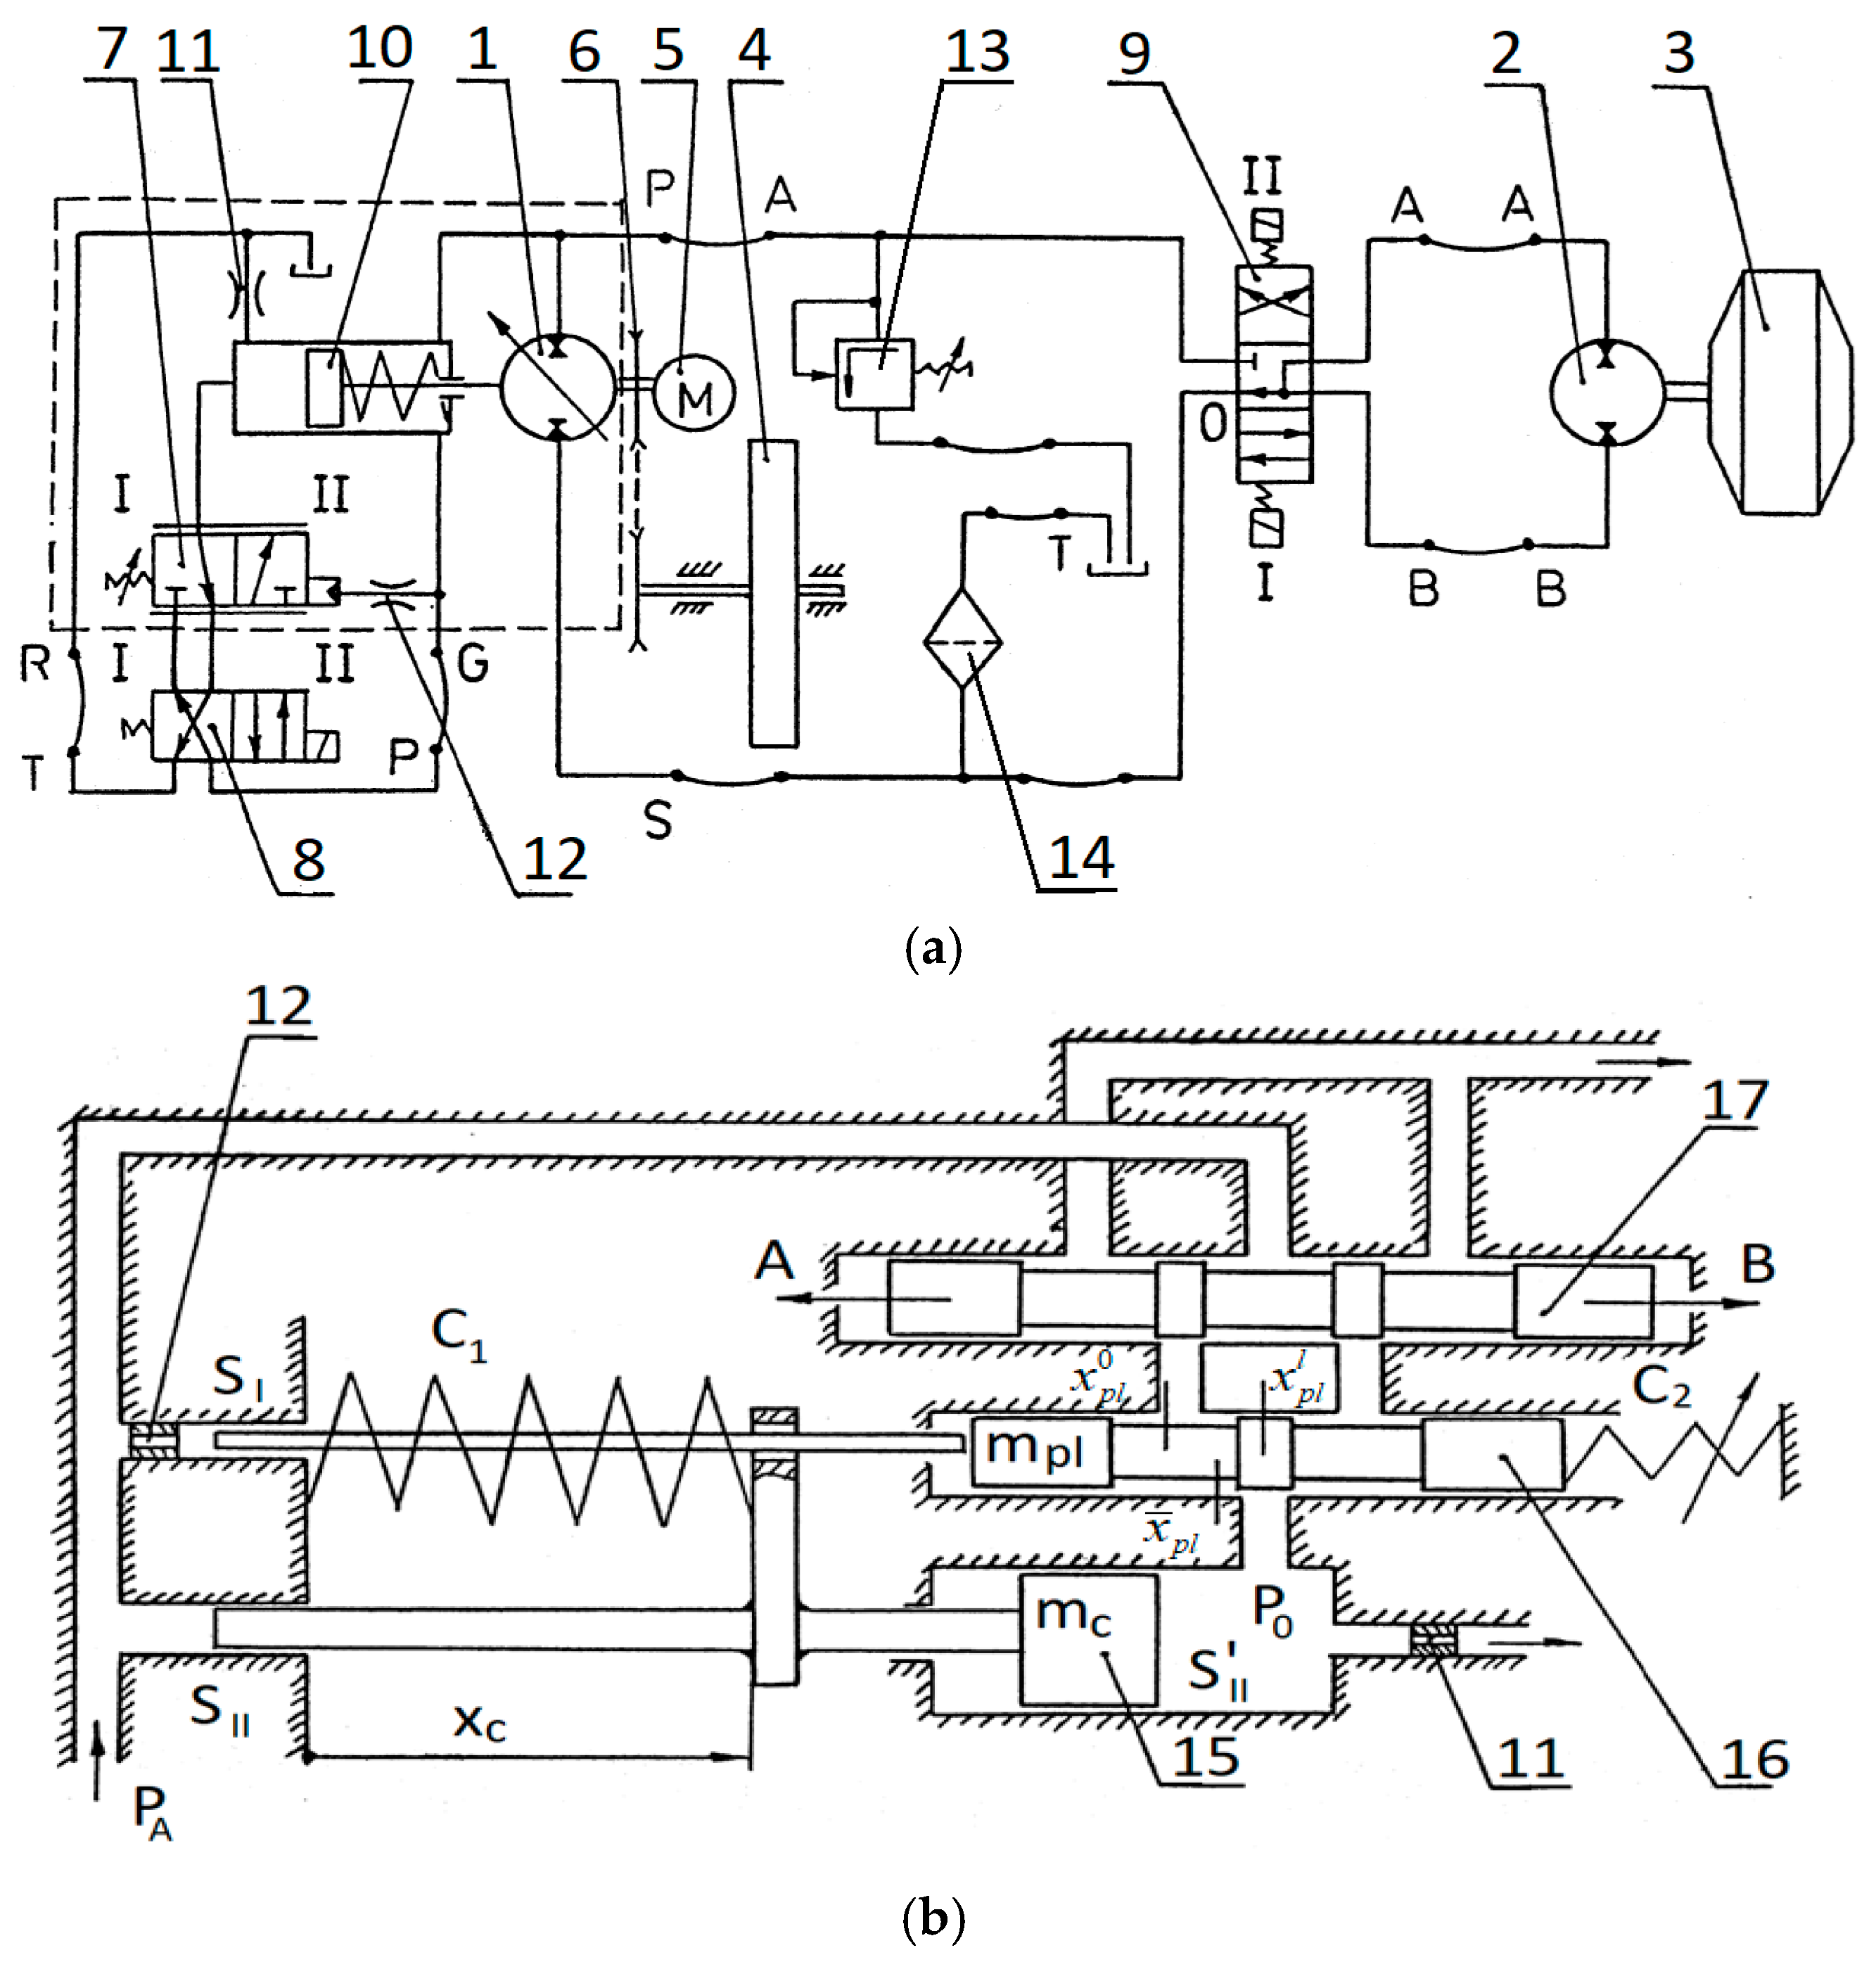 Wiring Diagram Electric Over Hydraulic Kes chevy ke light ... on